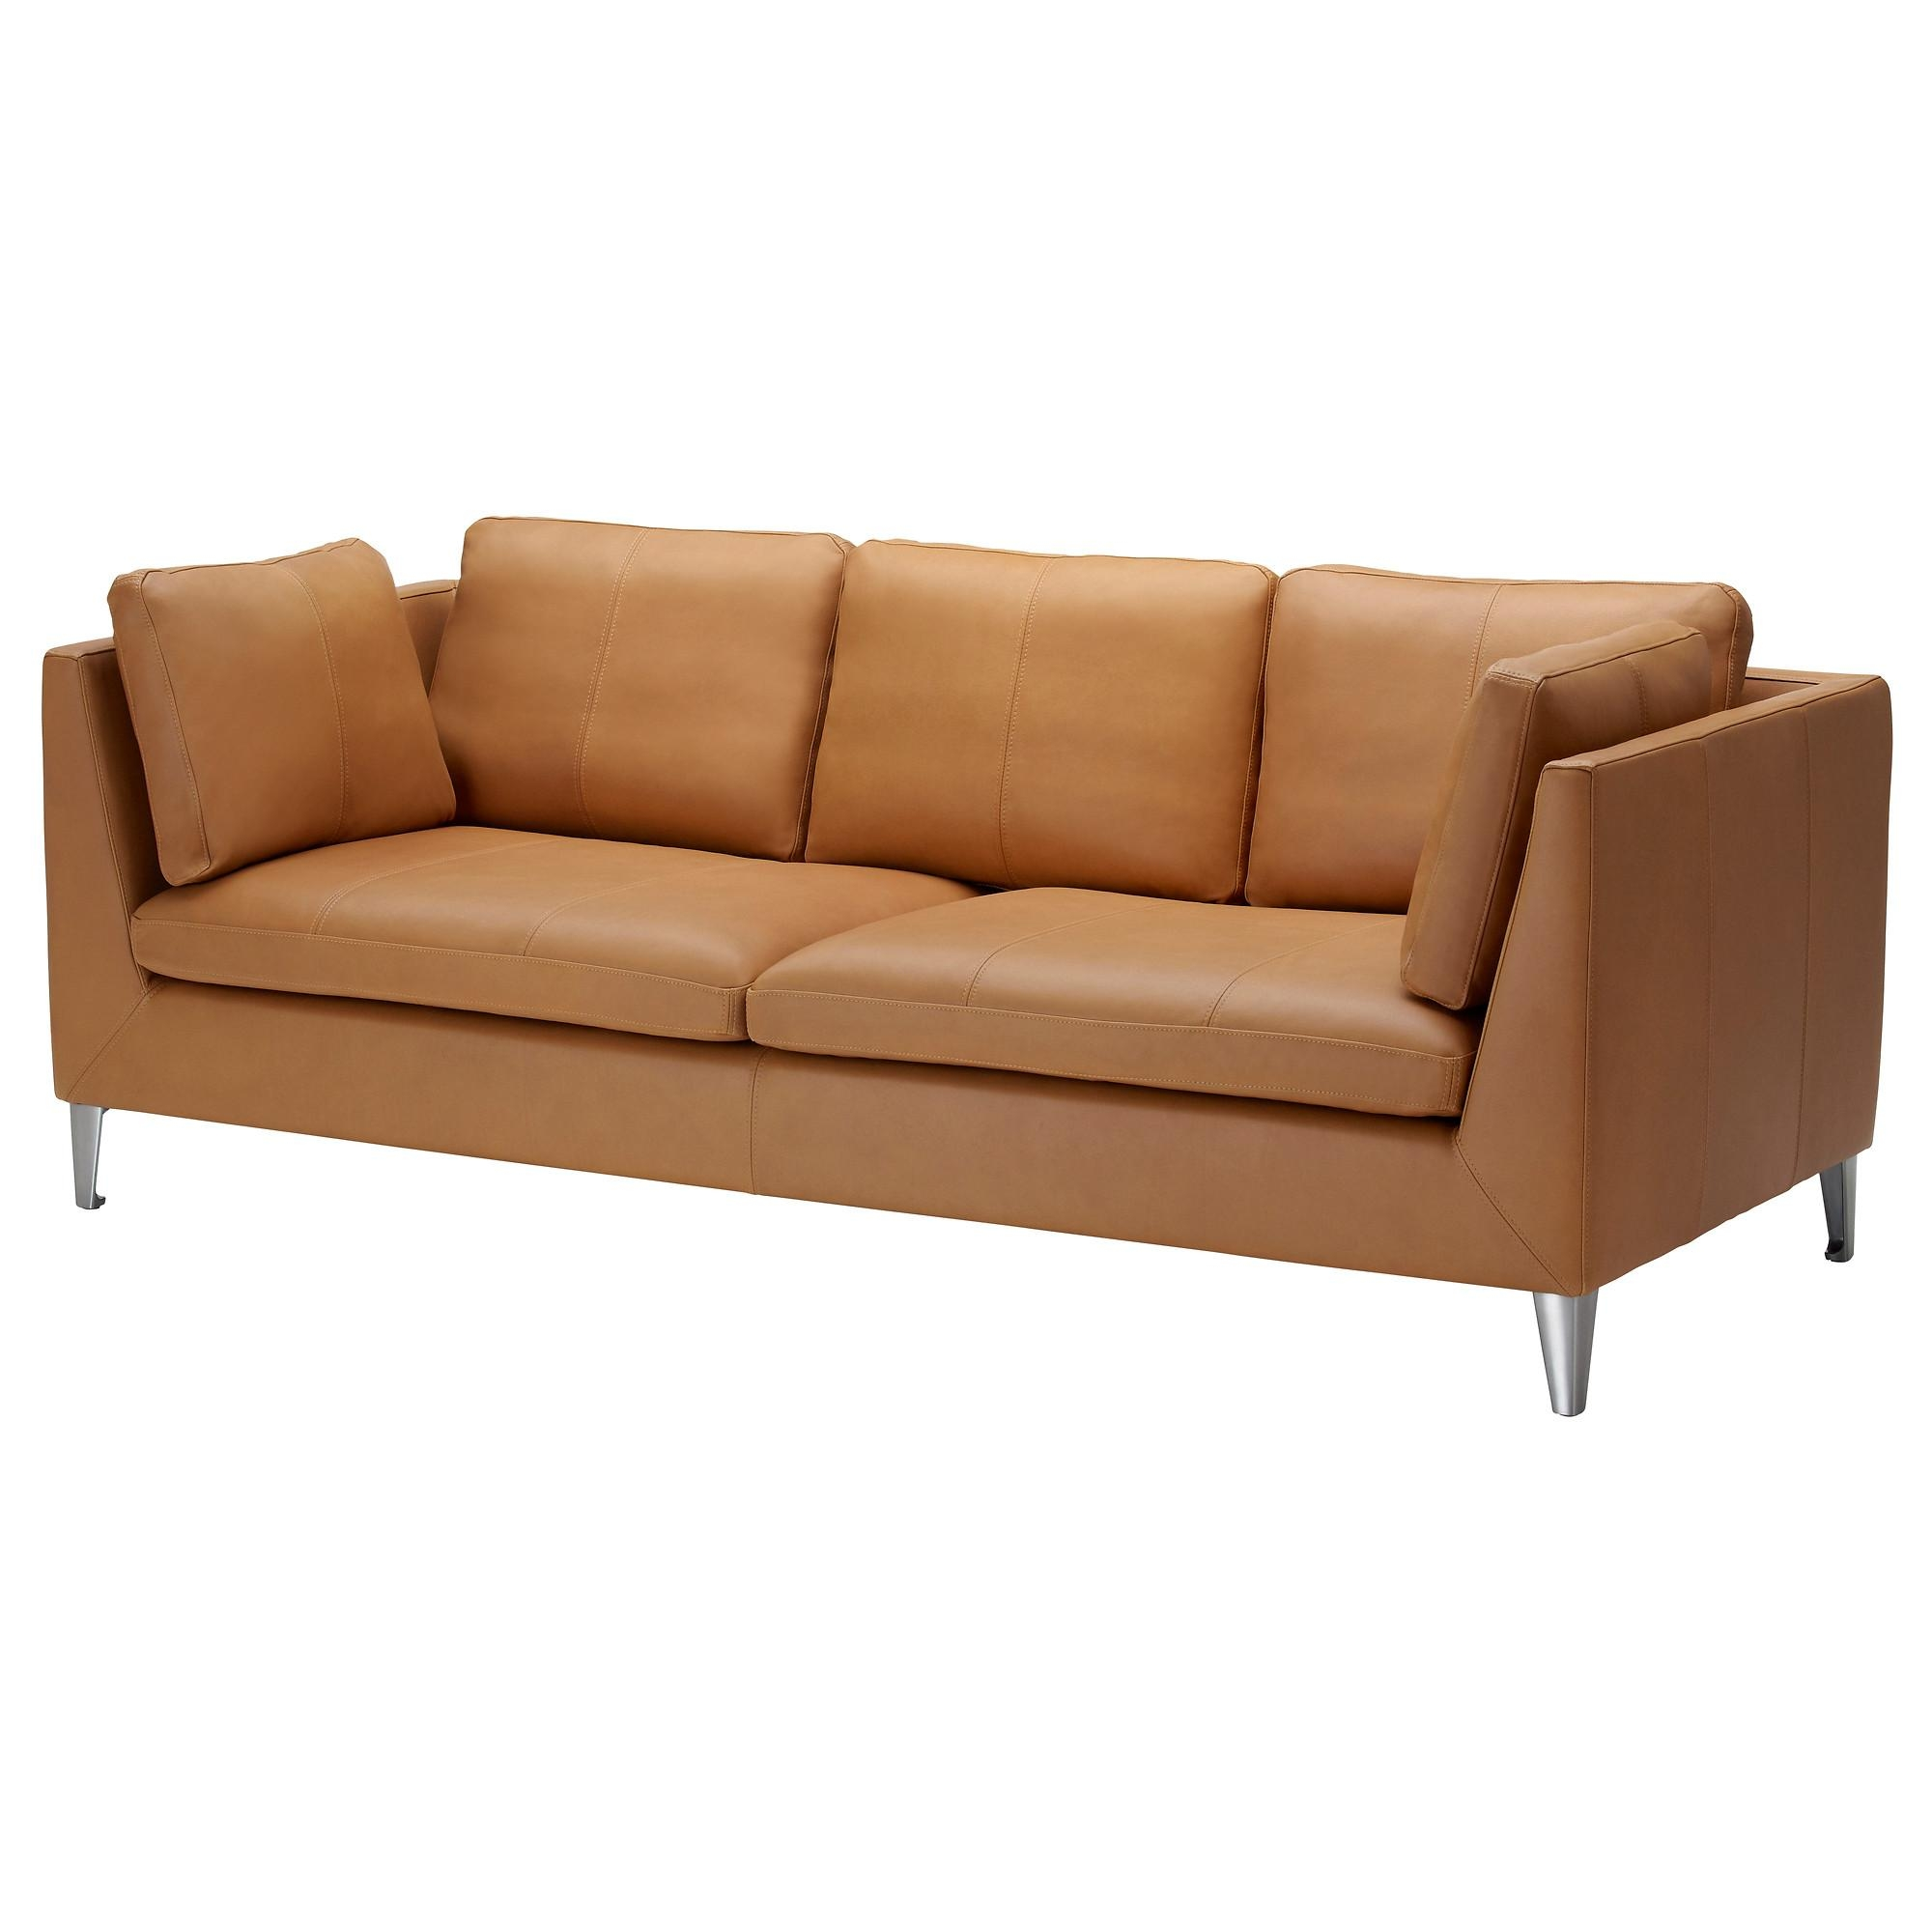 Stockholm Sofa – Seglora Natural – Ikea With Orange Ikea Sofas (Image 19 of 20)